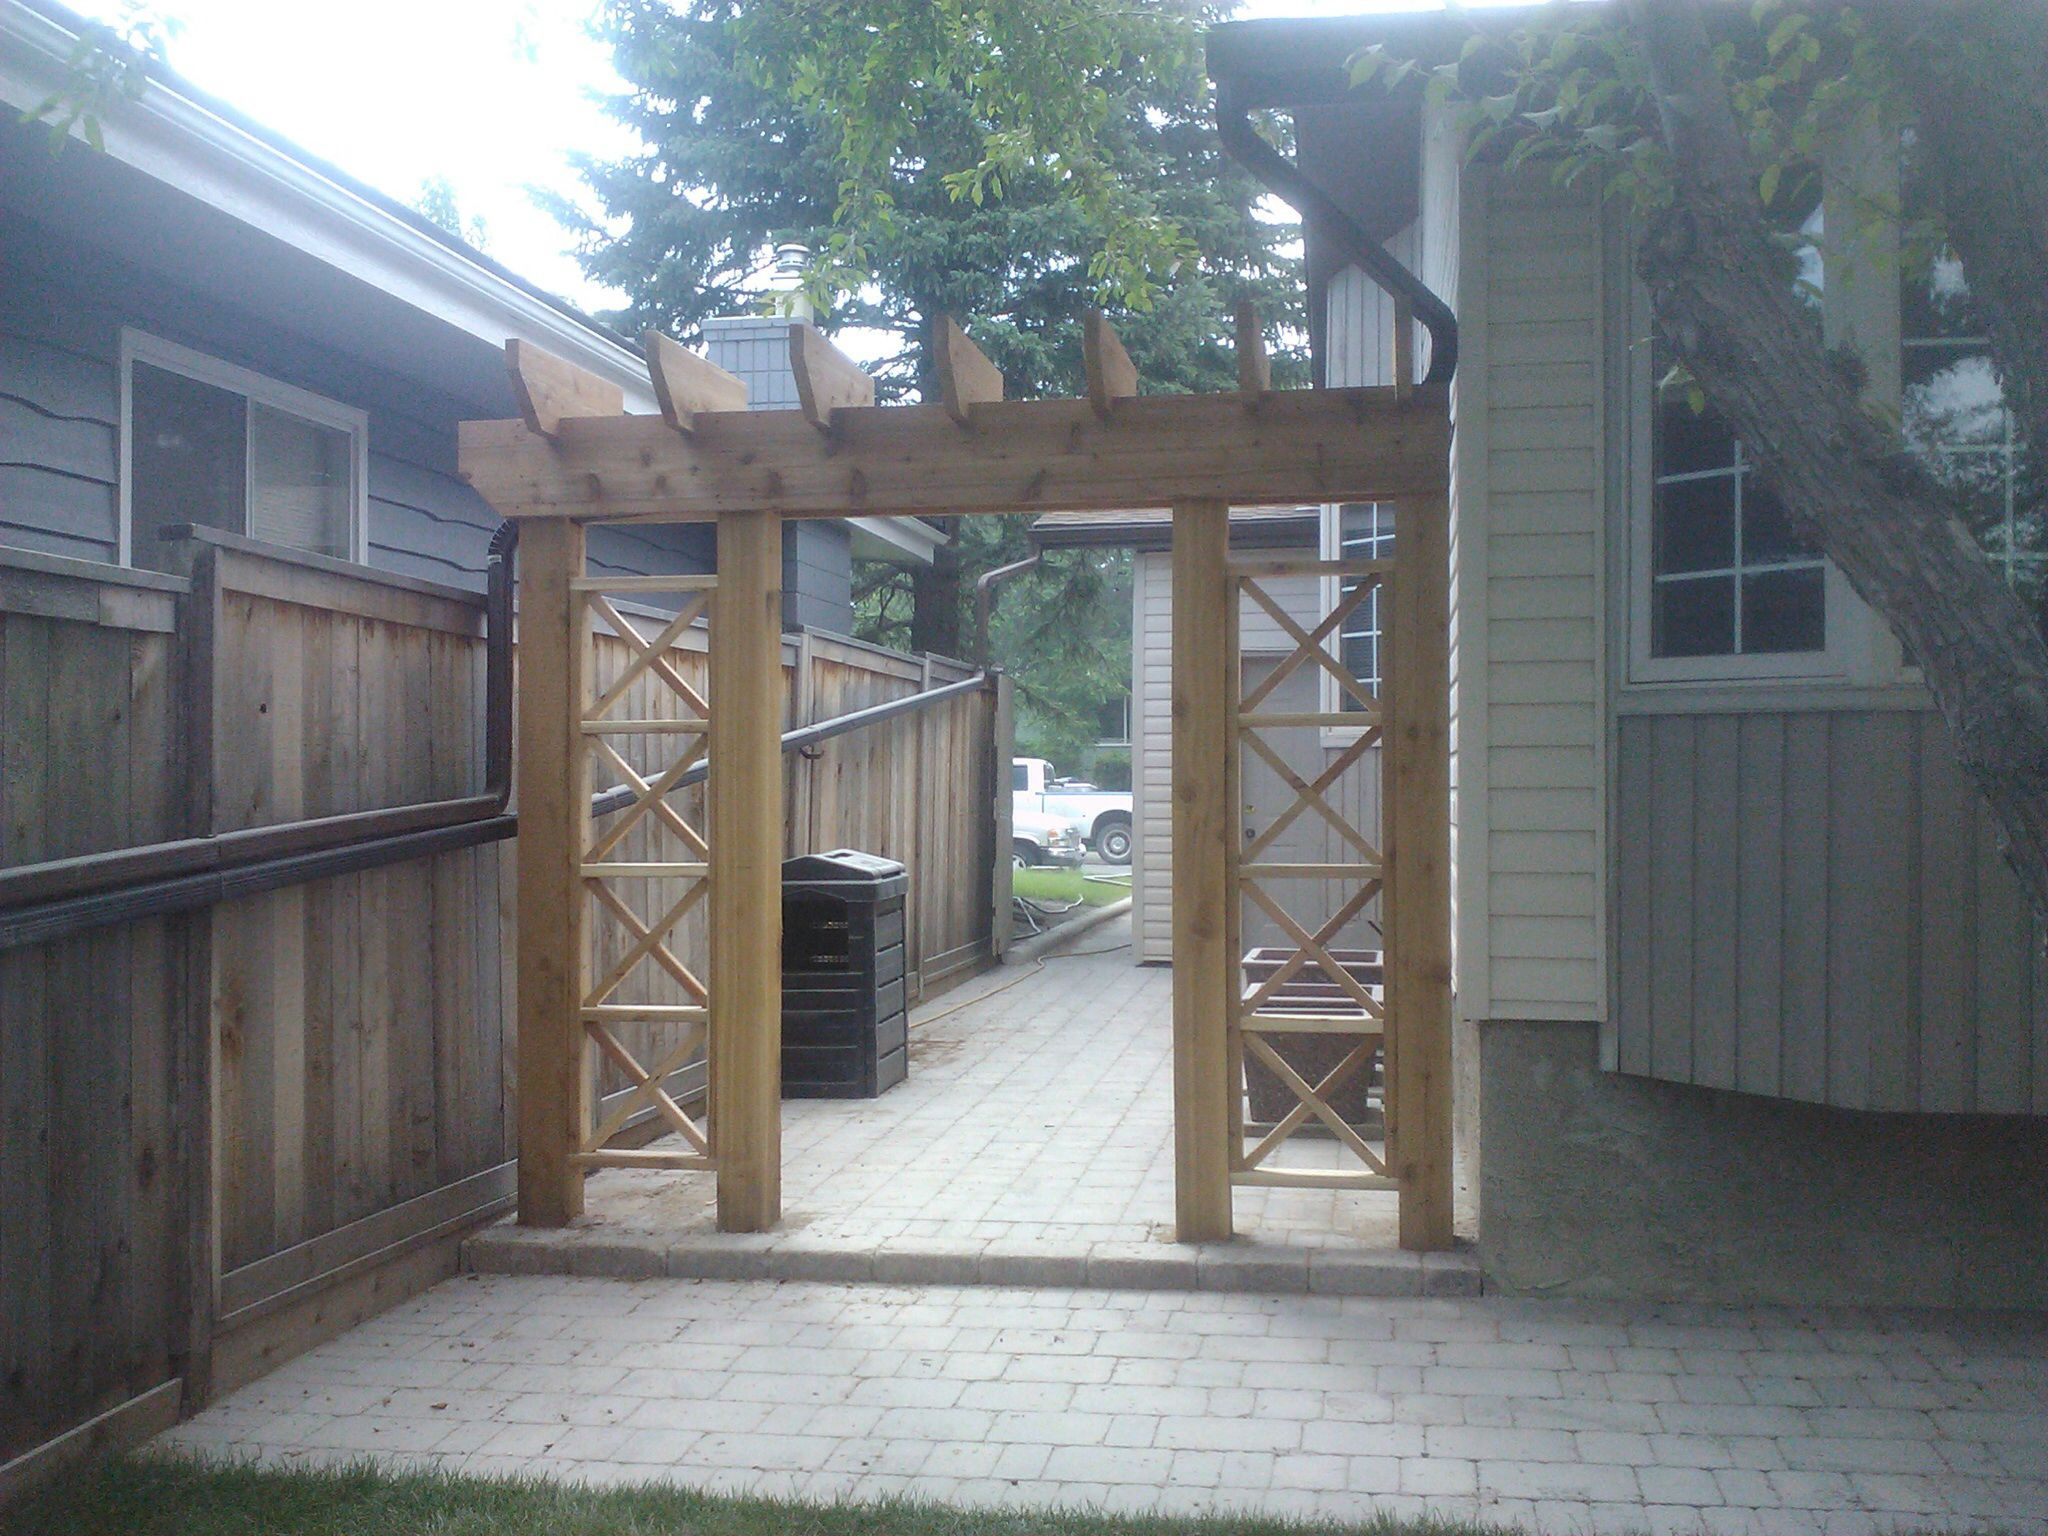 Pin By Mo Vengeance On Past Projects Downspout Pergola Rustic Pergola